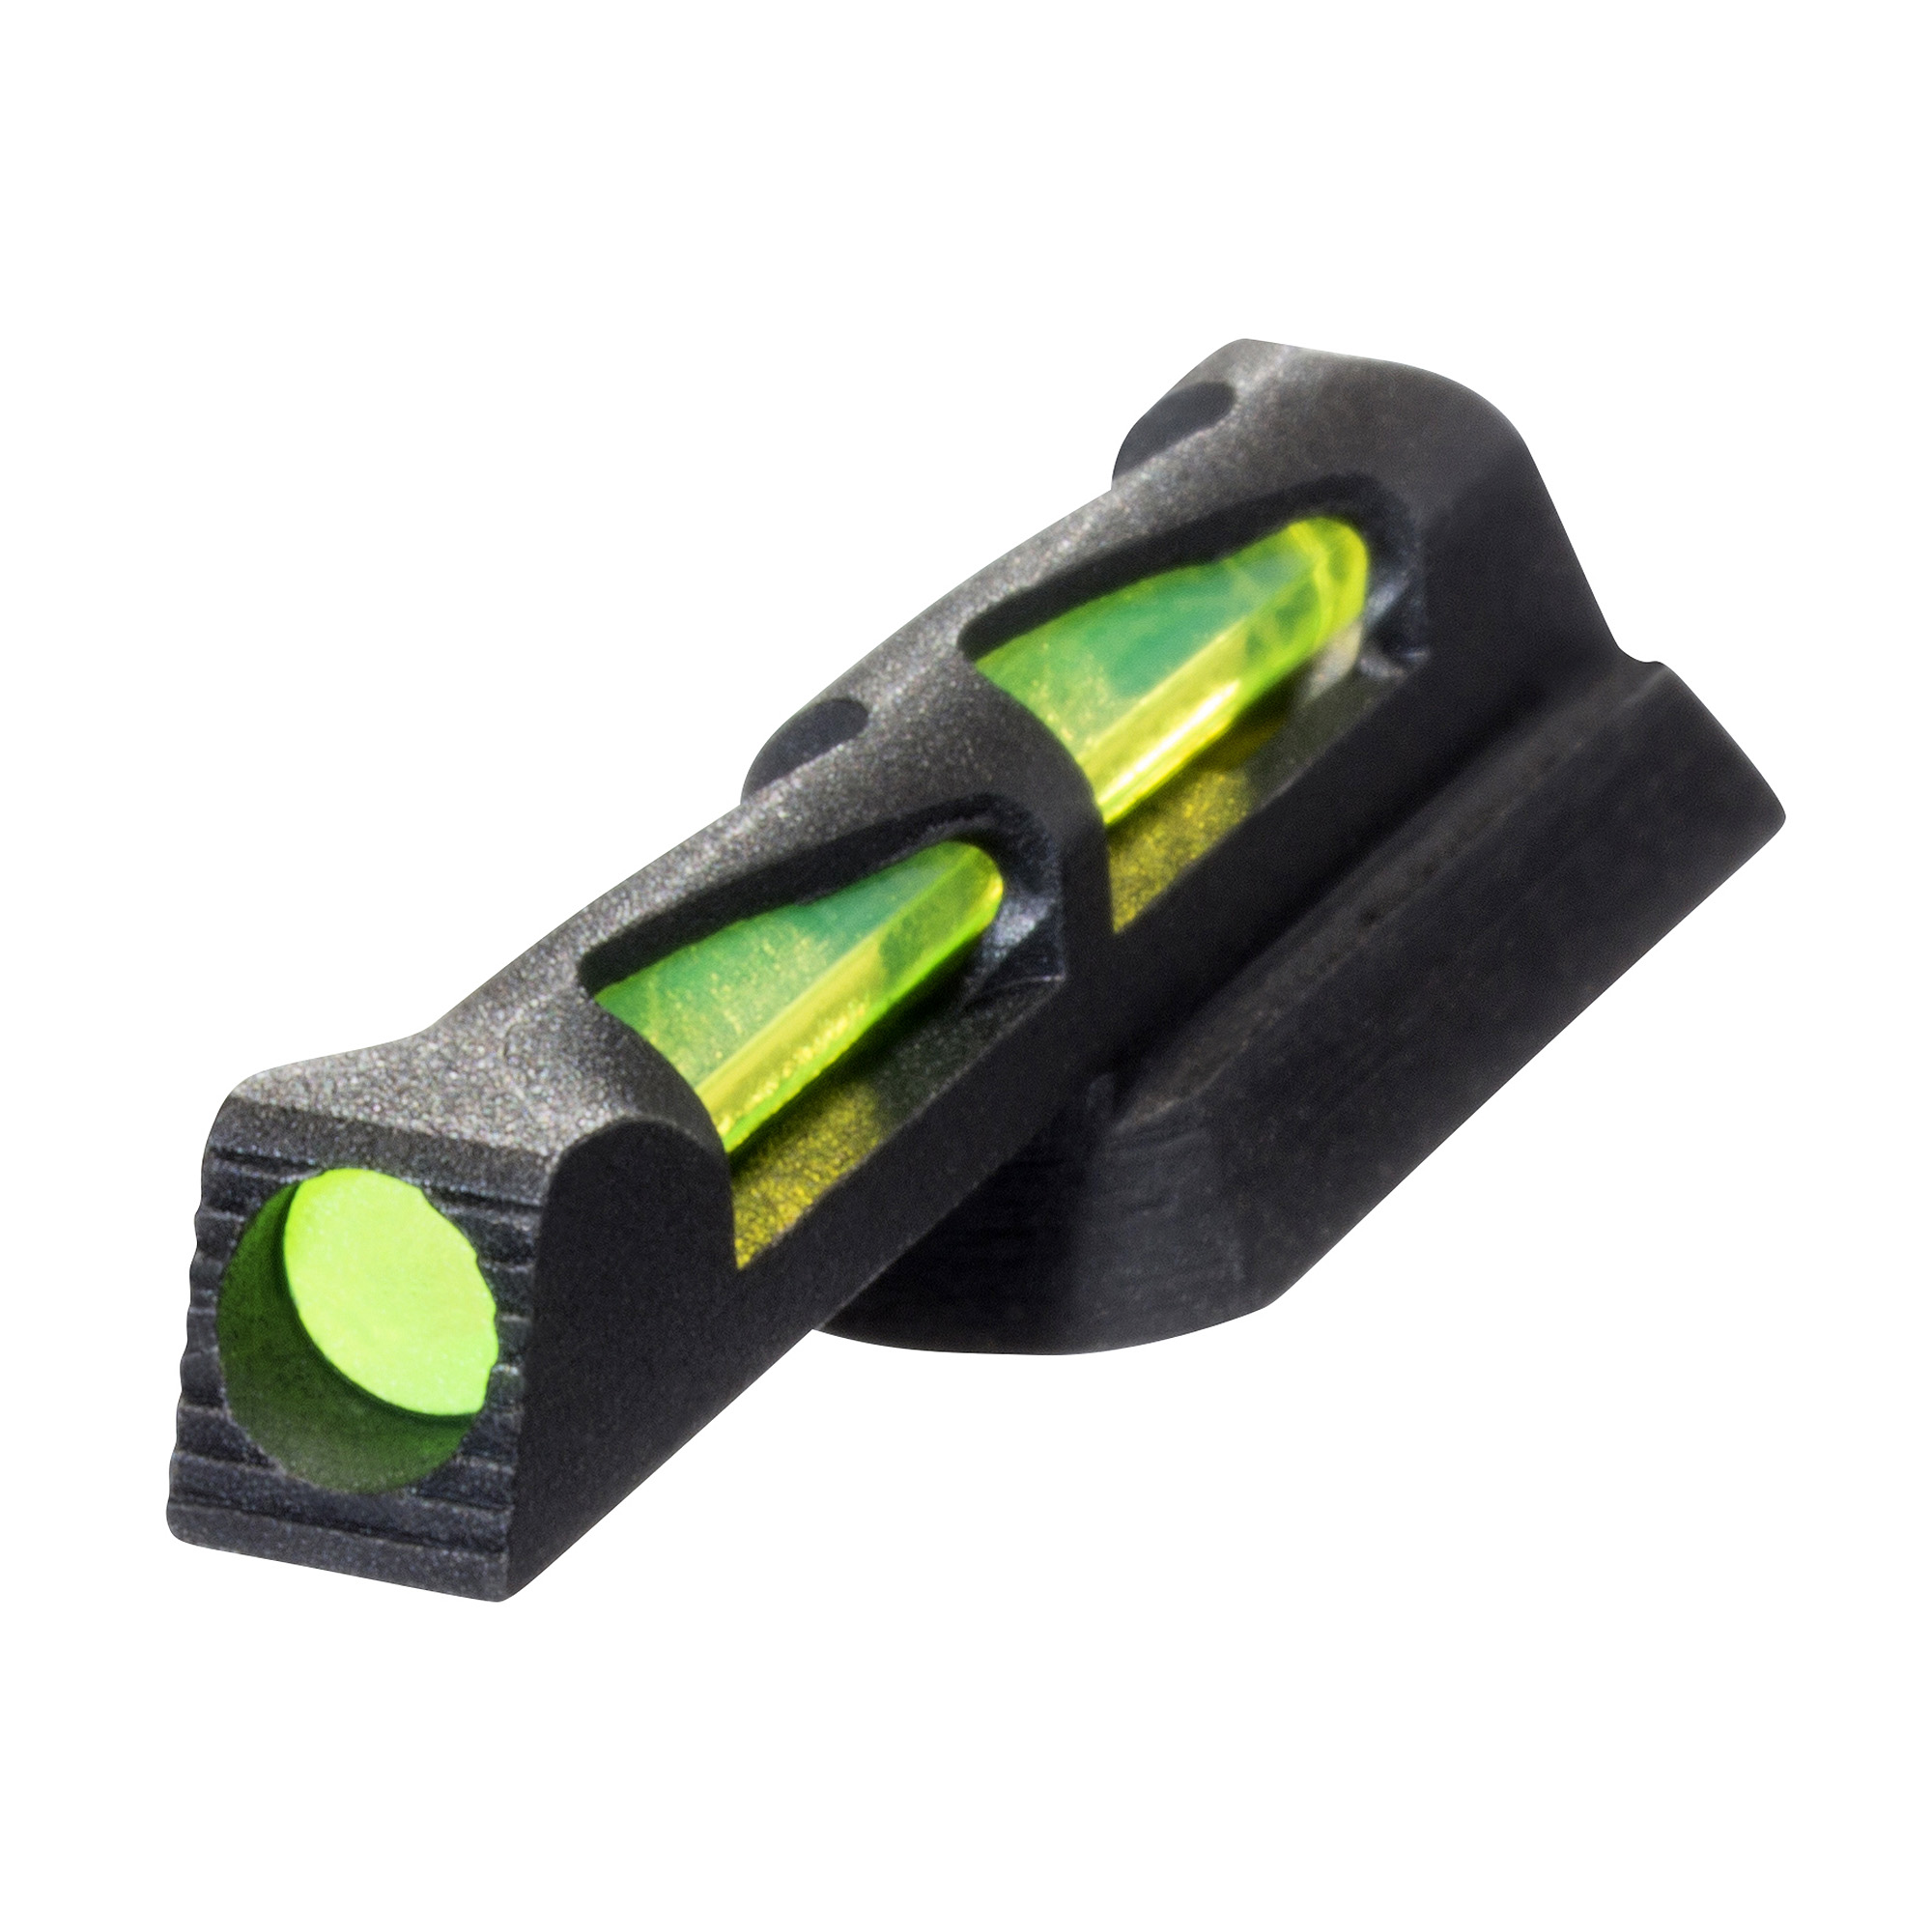 HiViz LITEWAVE CZ 75/85, P-01 Fiber Optic Front Sight Red/Green/White